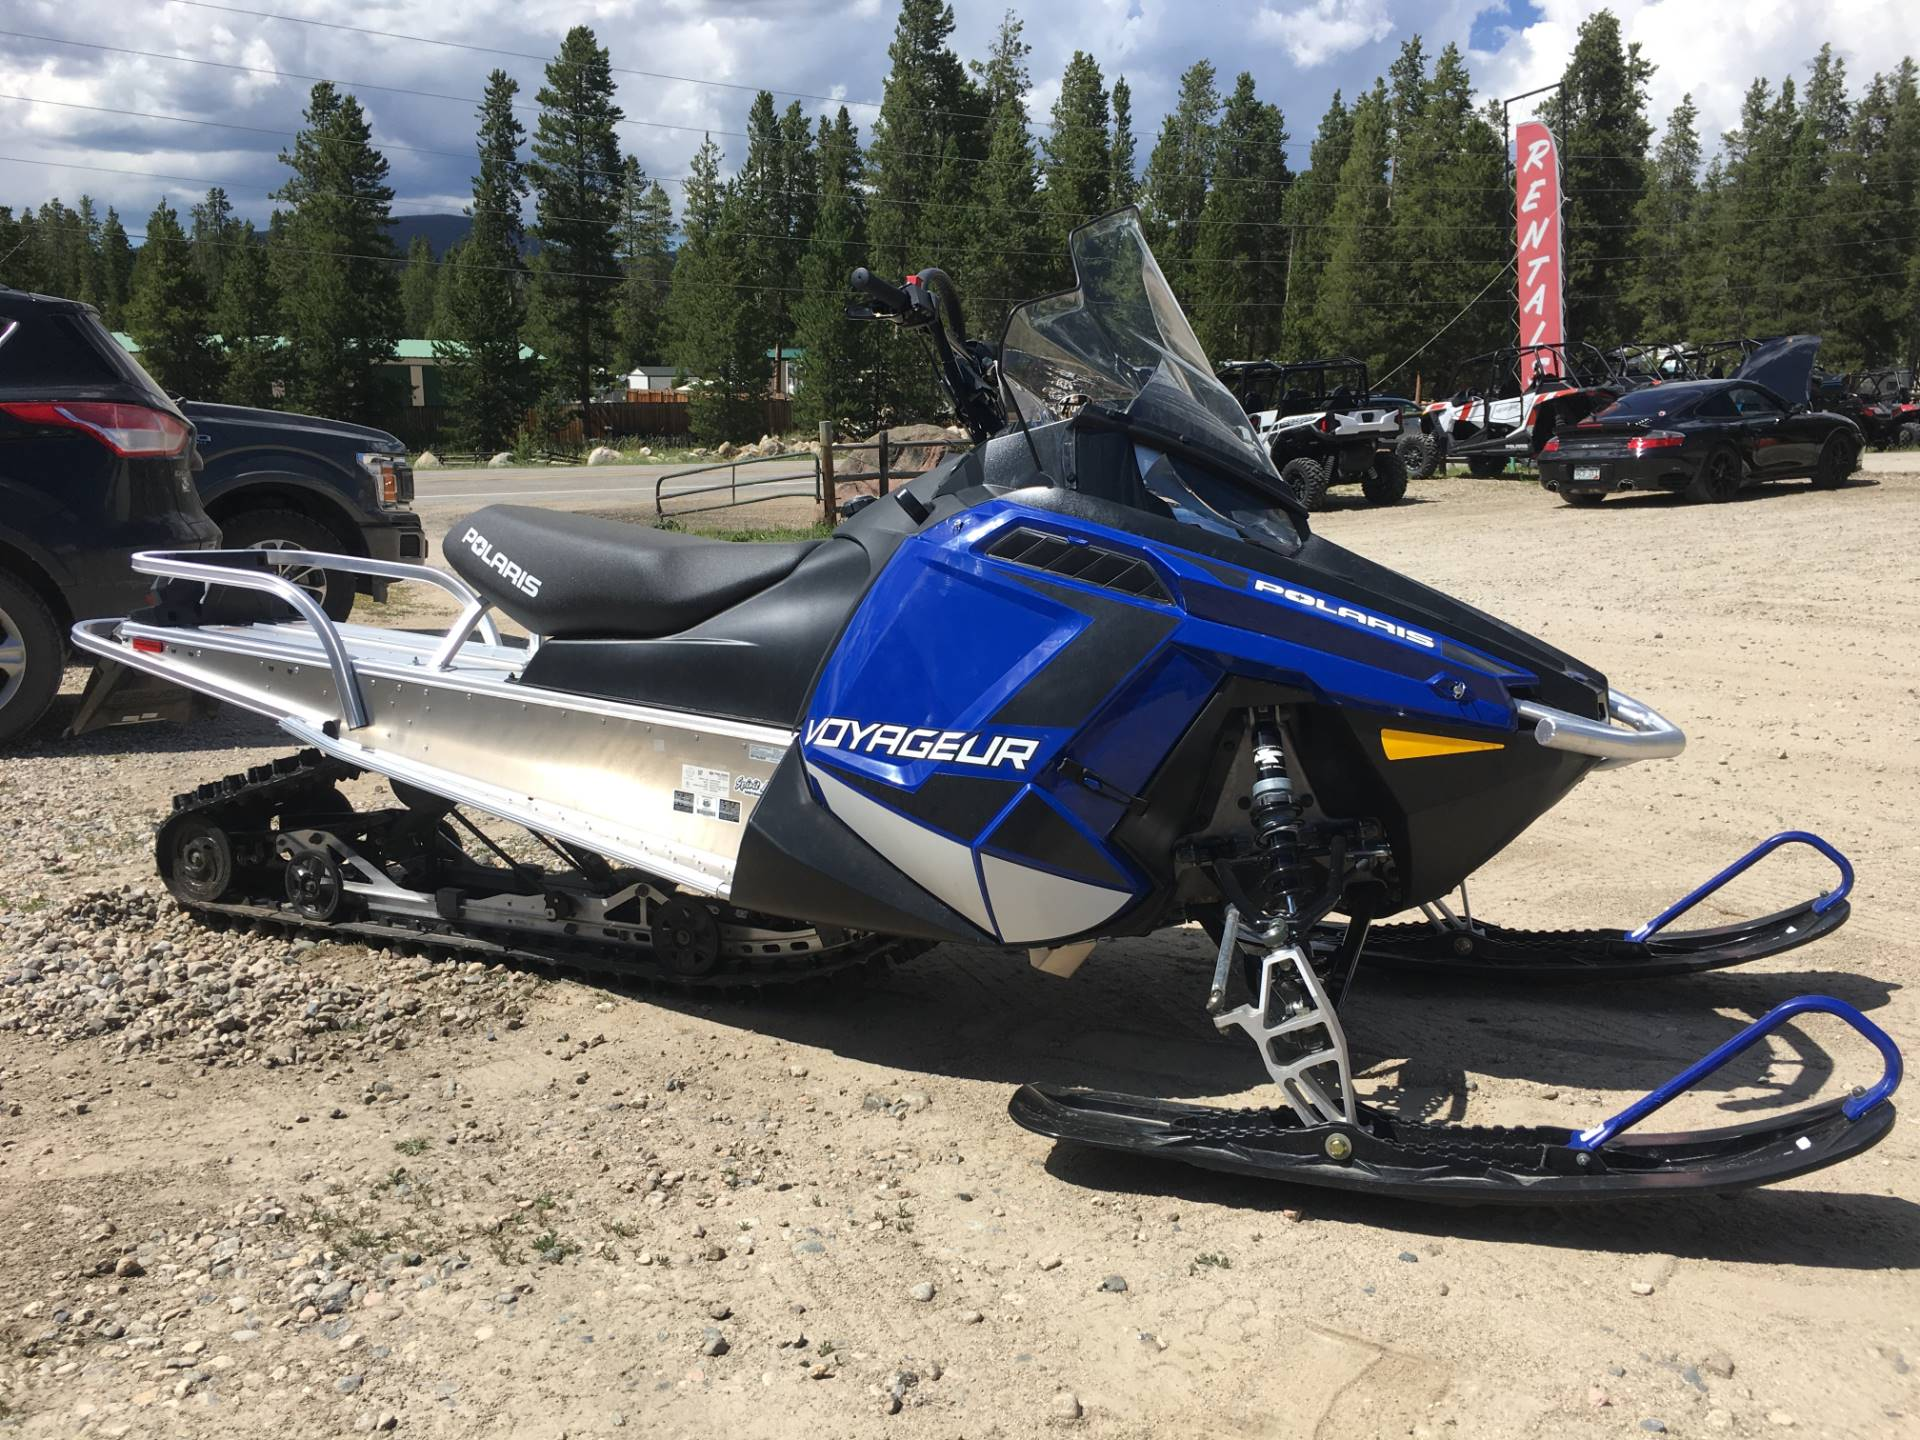 2019 Polaris 550 Voyageur 155 ES in Grand Lake, Colorado - Photo 1